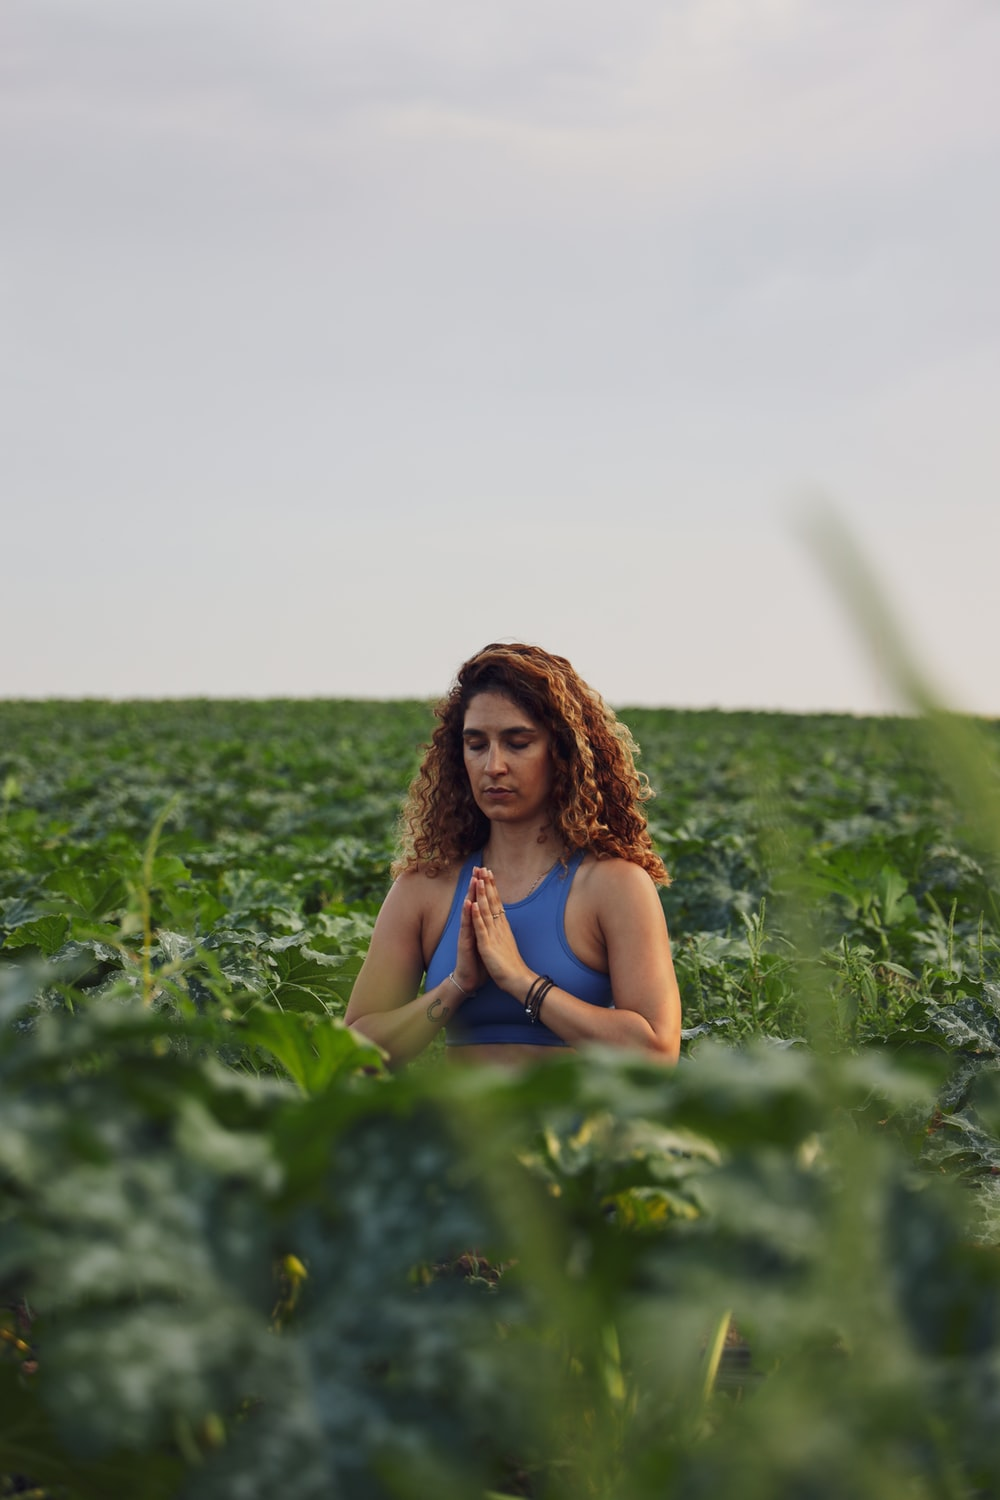 selective focus photography of woman meditating while sitting on ground surrounded by plants